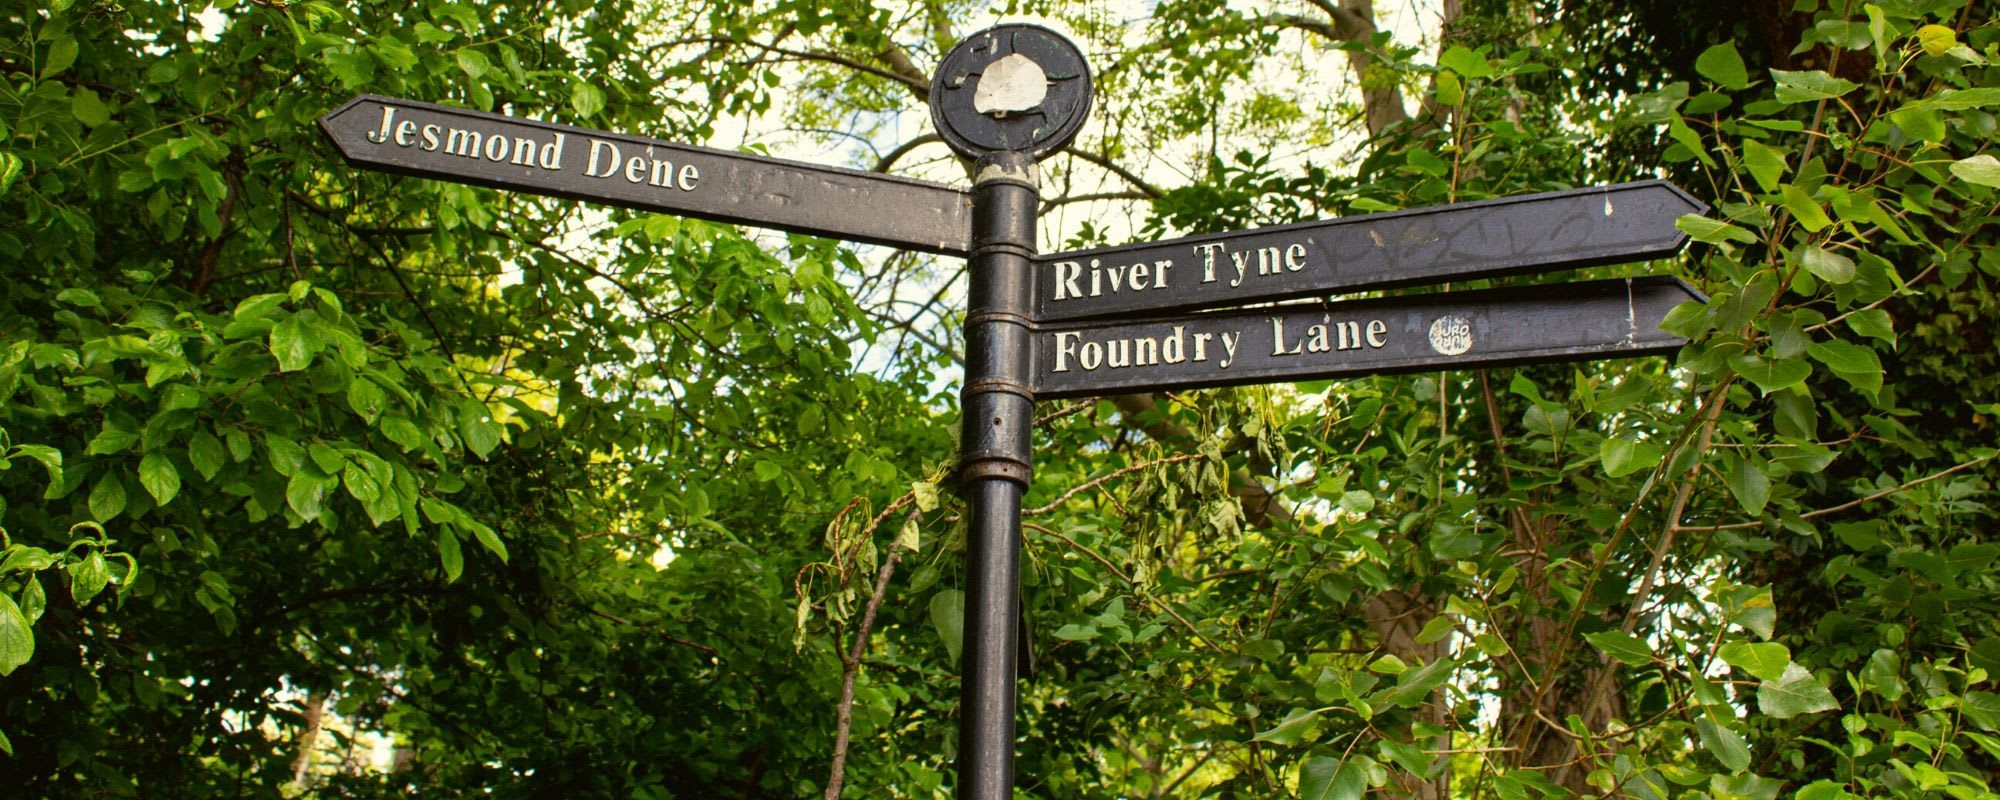 Street sign in Ouseburn pointing to Foundry Lane, RIver Tyne and Jesmond Dene